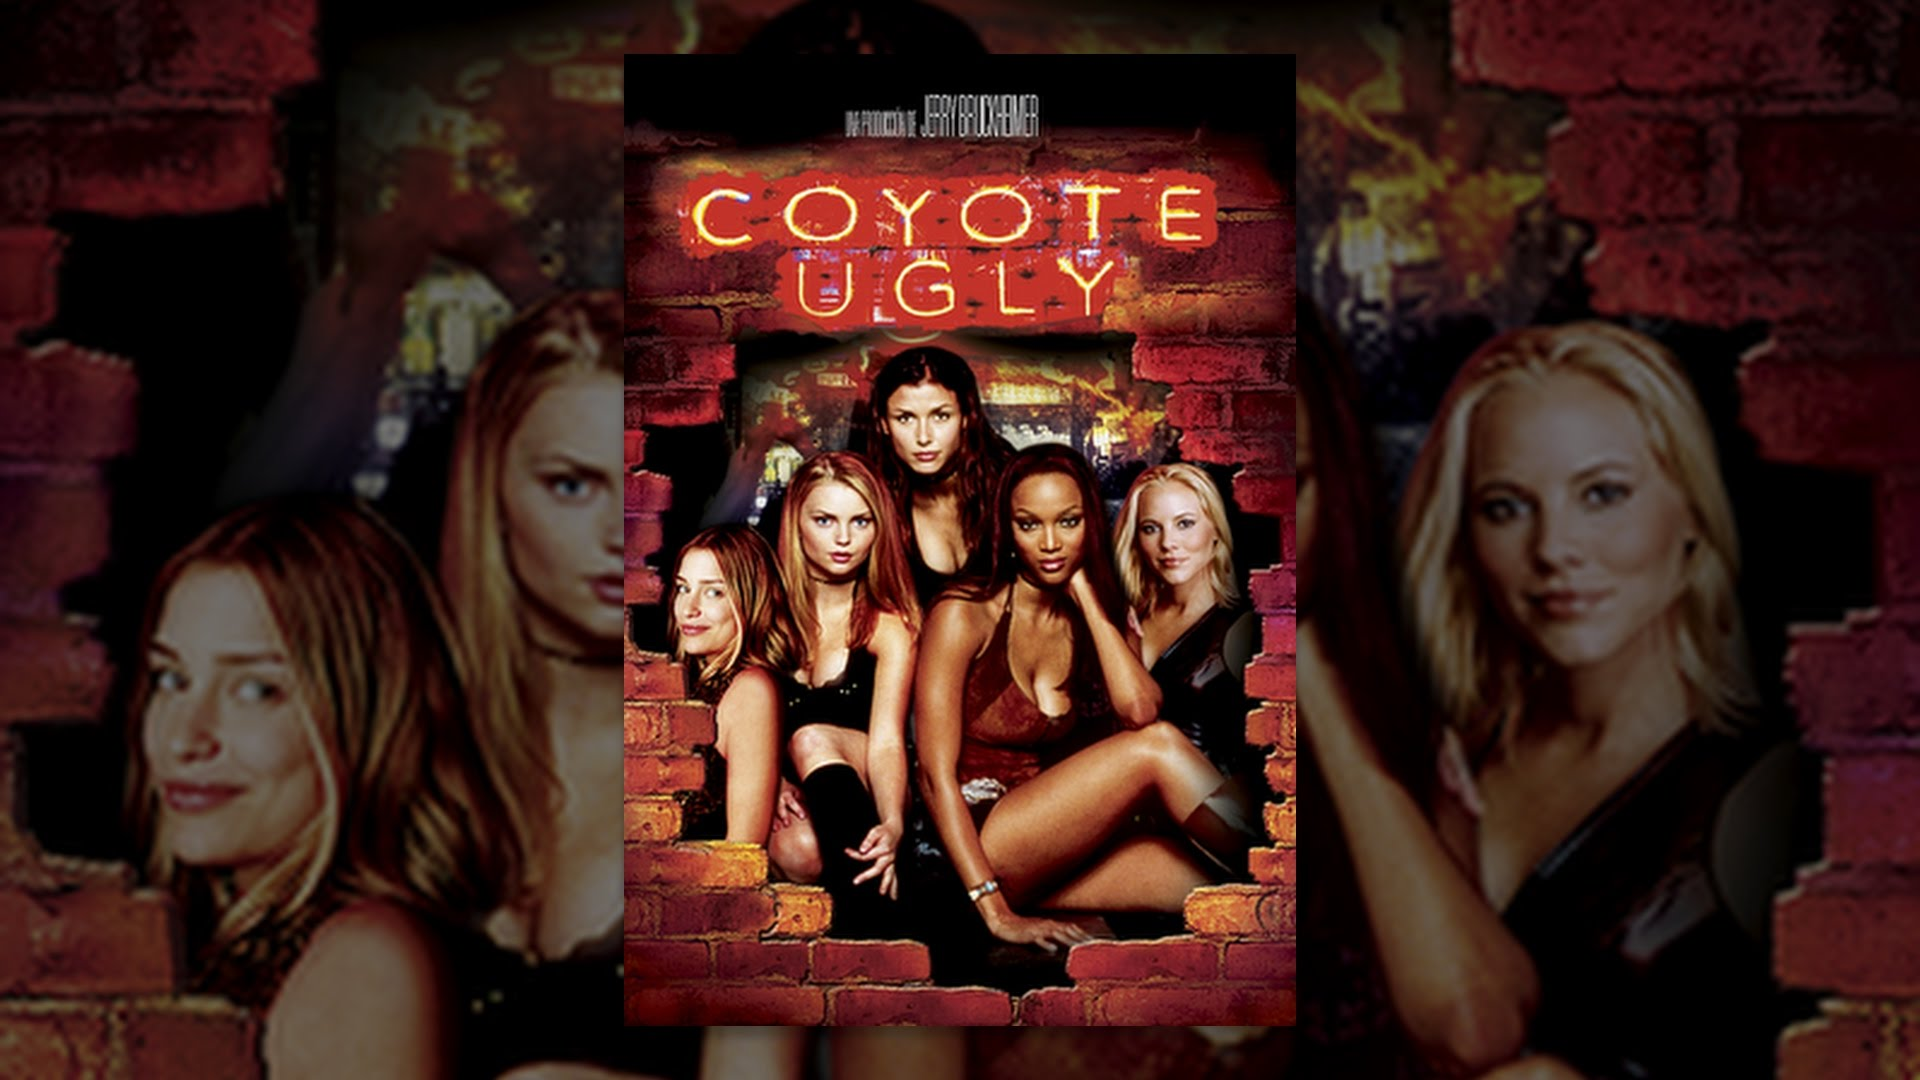 Coyote Ugly Was Released In 2000 And Centers On A Young Woman Rimes Paid Tribute To The Movie In 2015 On Its 15th Would You Like To Switch To Our